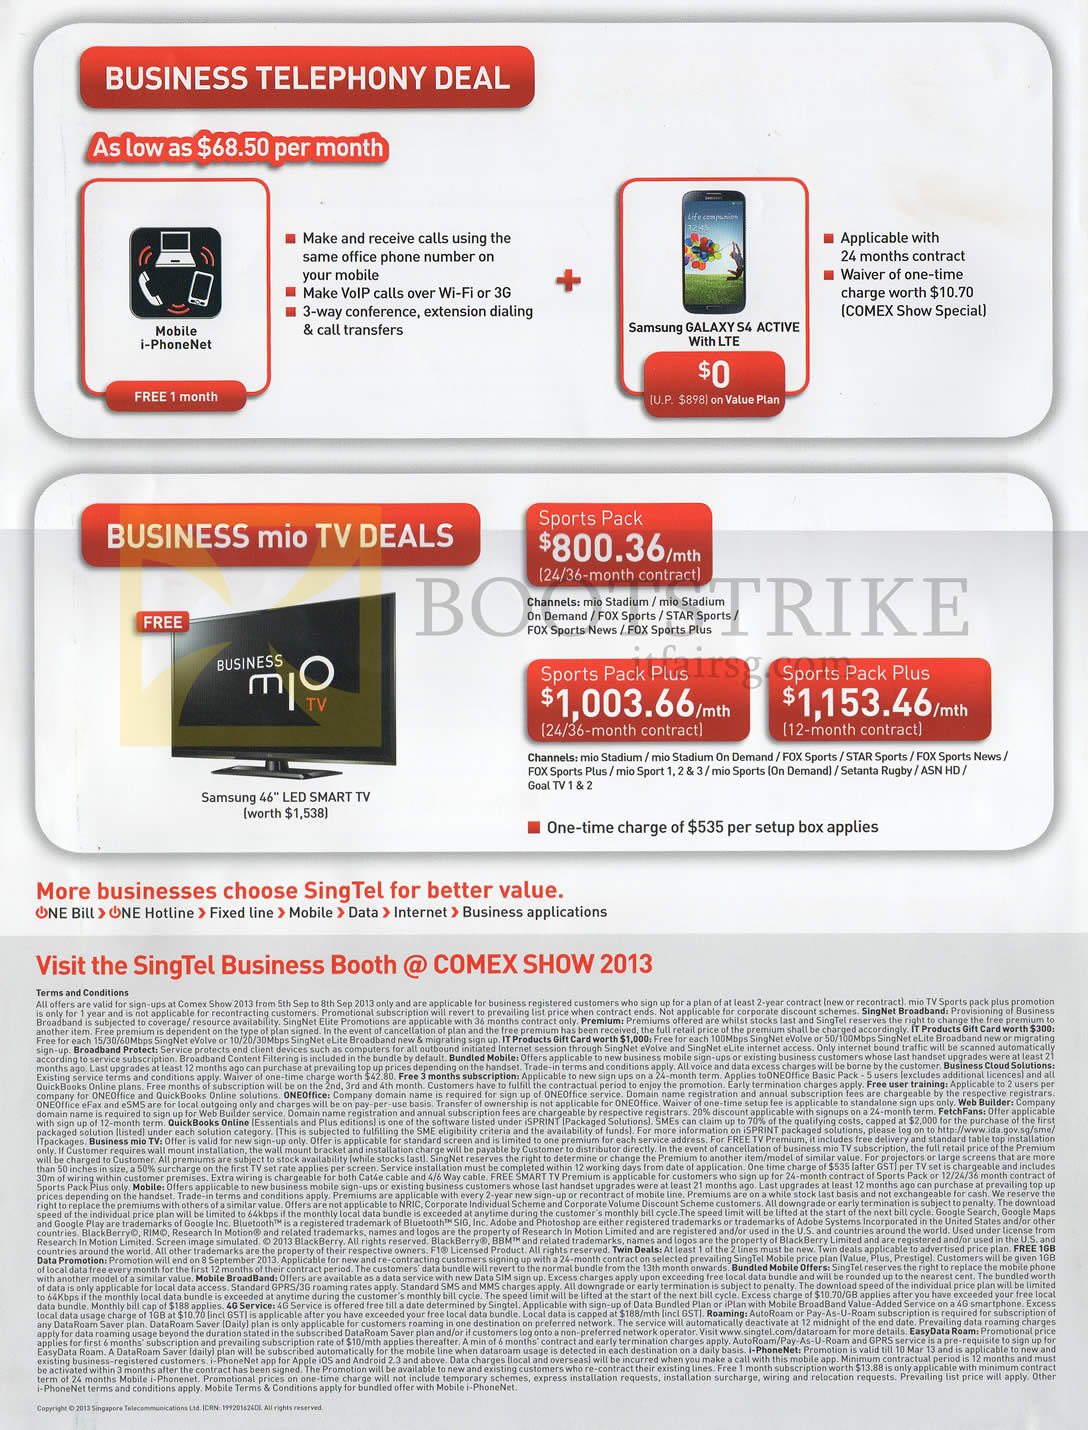 COMEX 2013 price list image brochure of Singtel Business Telephony, Mio TV